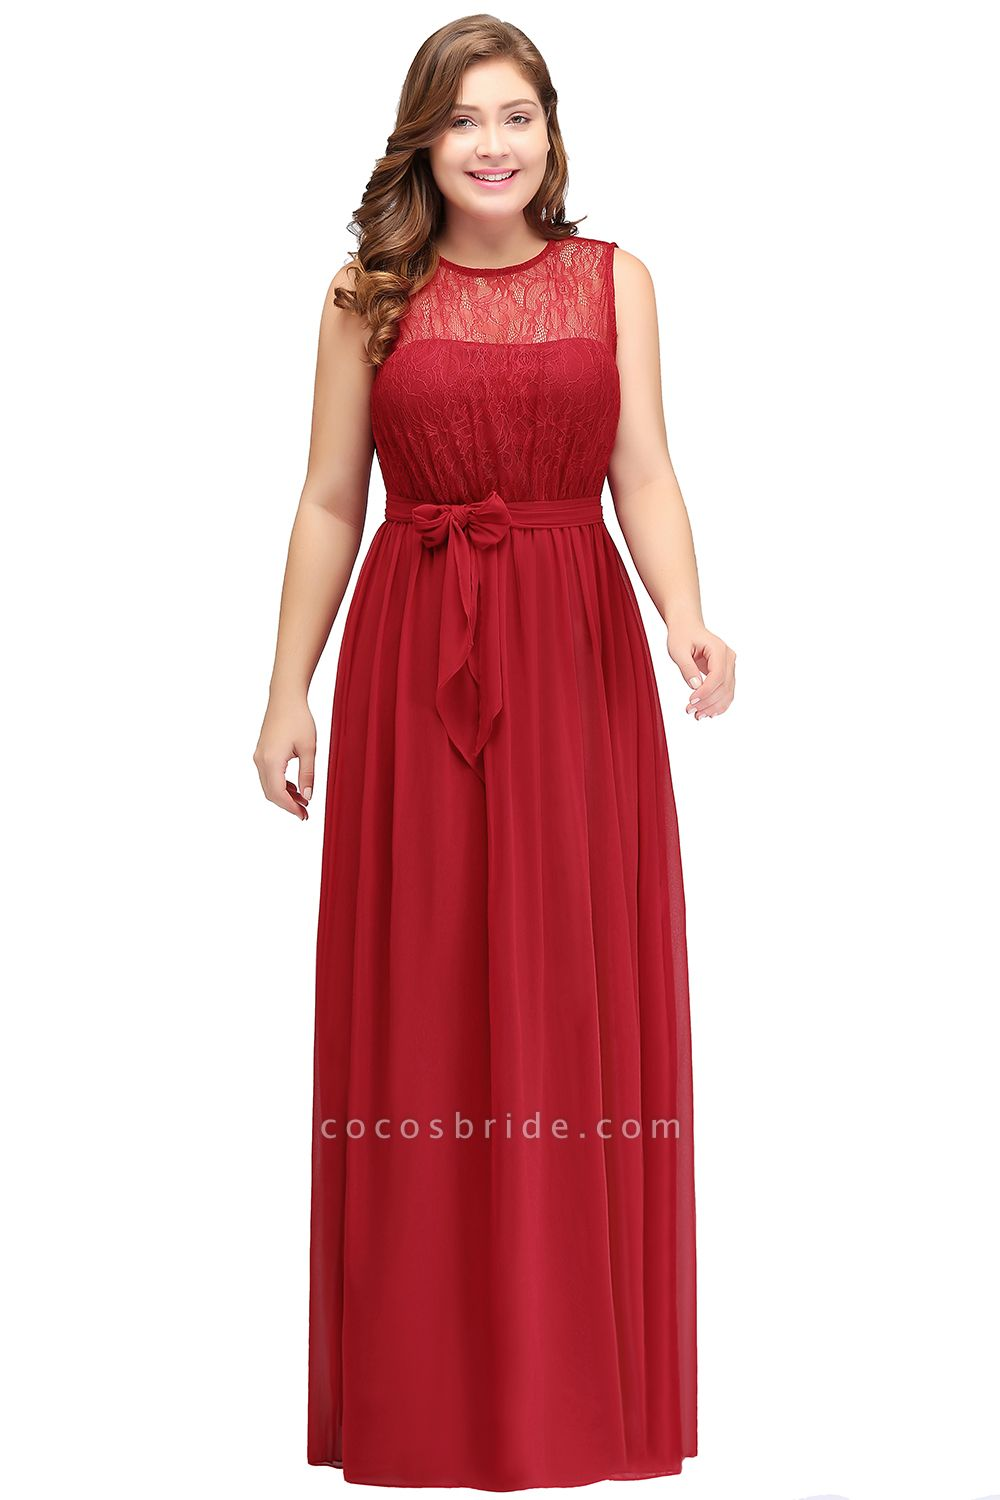 JAELYN | A-Line Crew Long Sleeveless Plus size Chiffon Evening Dresses with Ruffles Bow